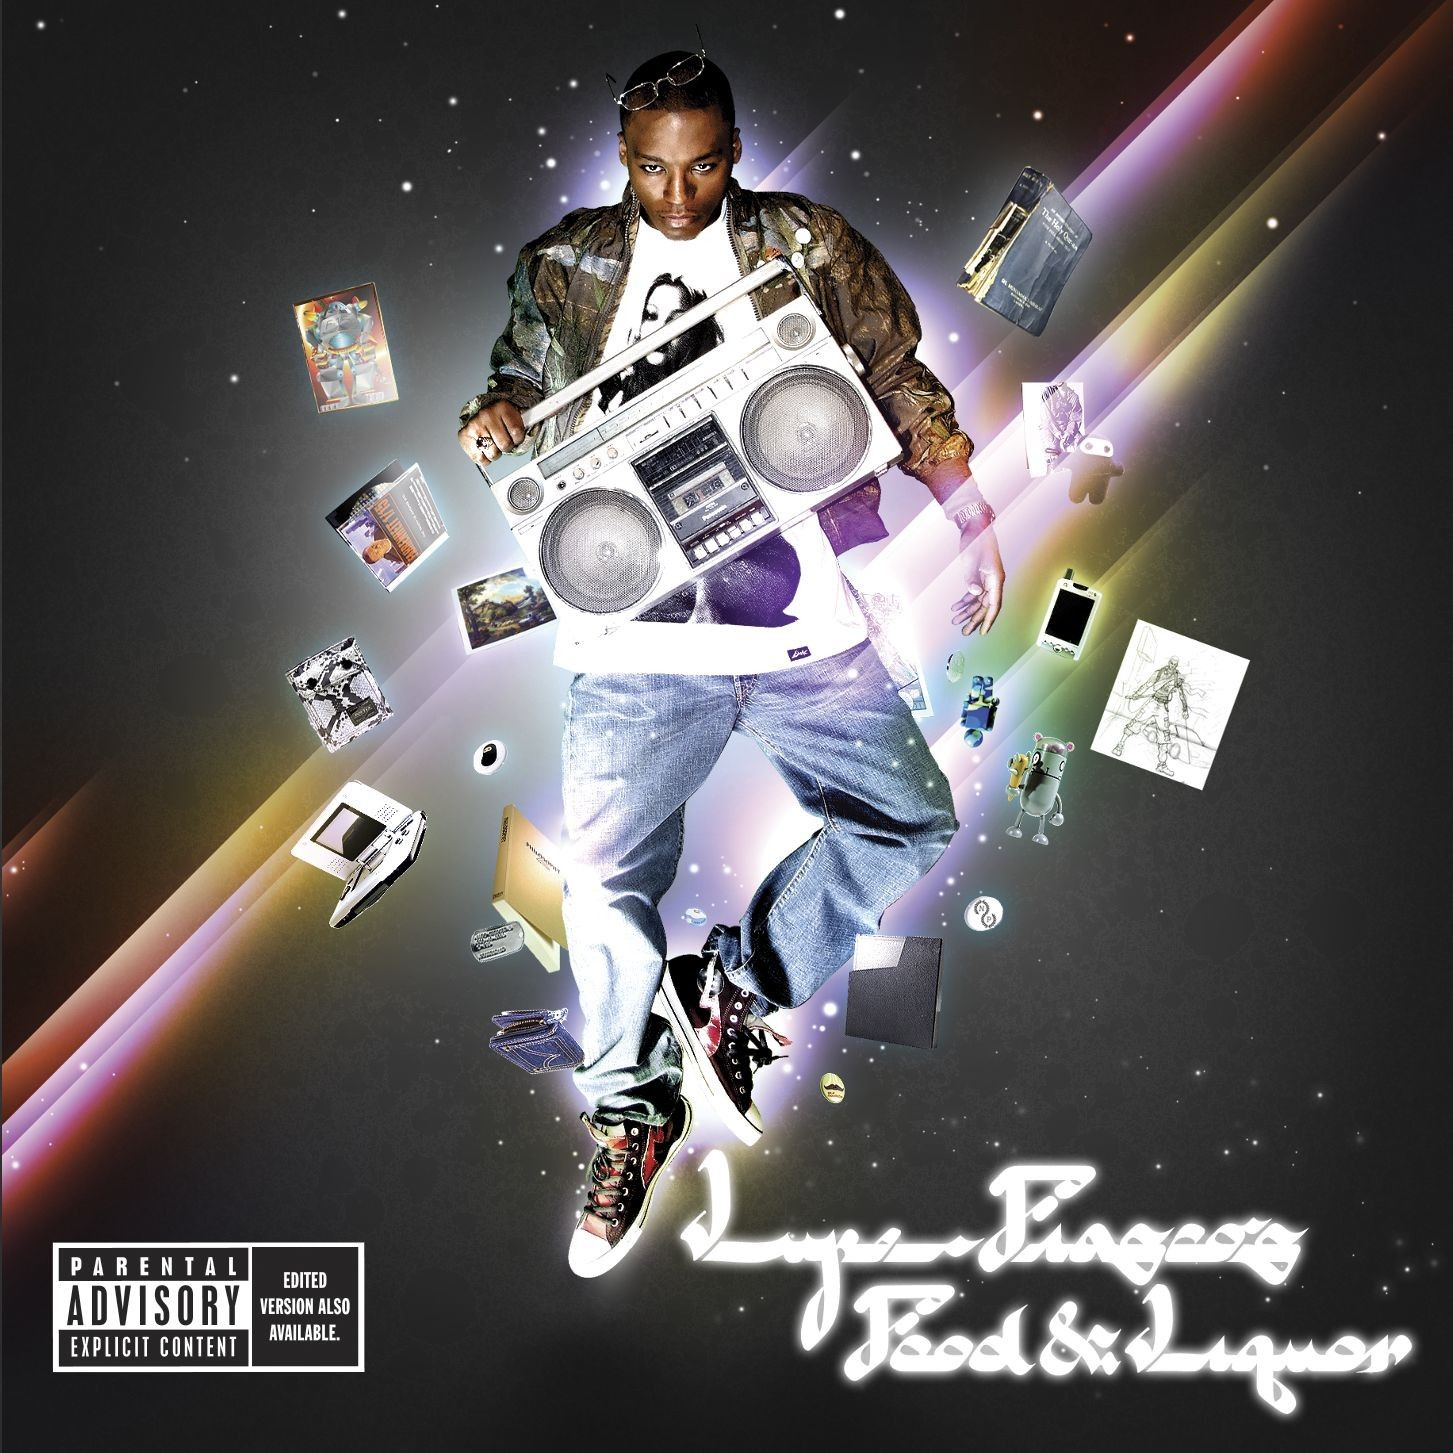 Lupe Fiasco - Food & Liquor album cover